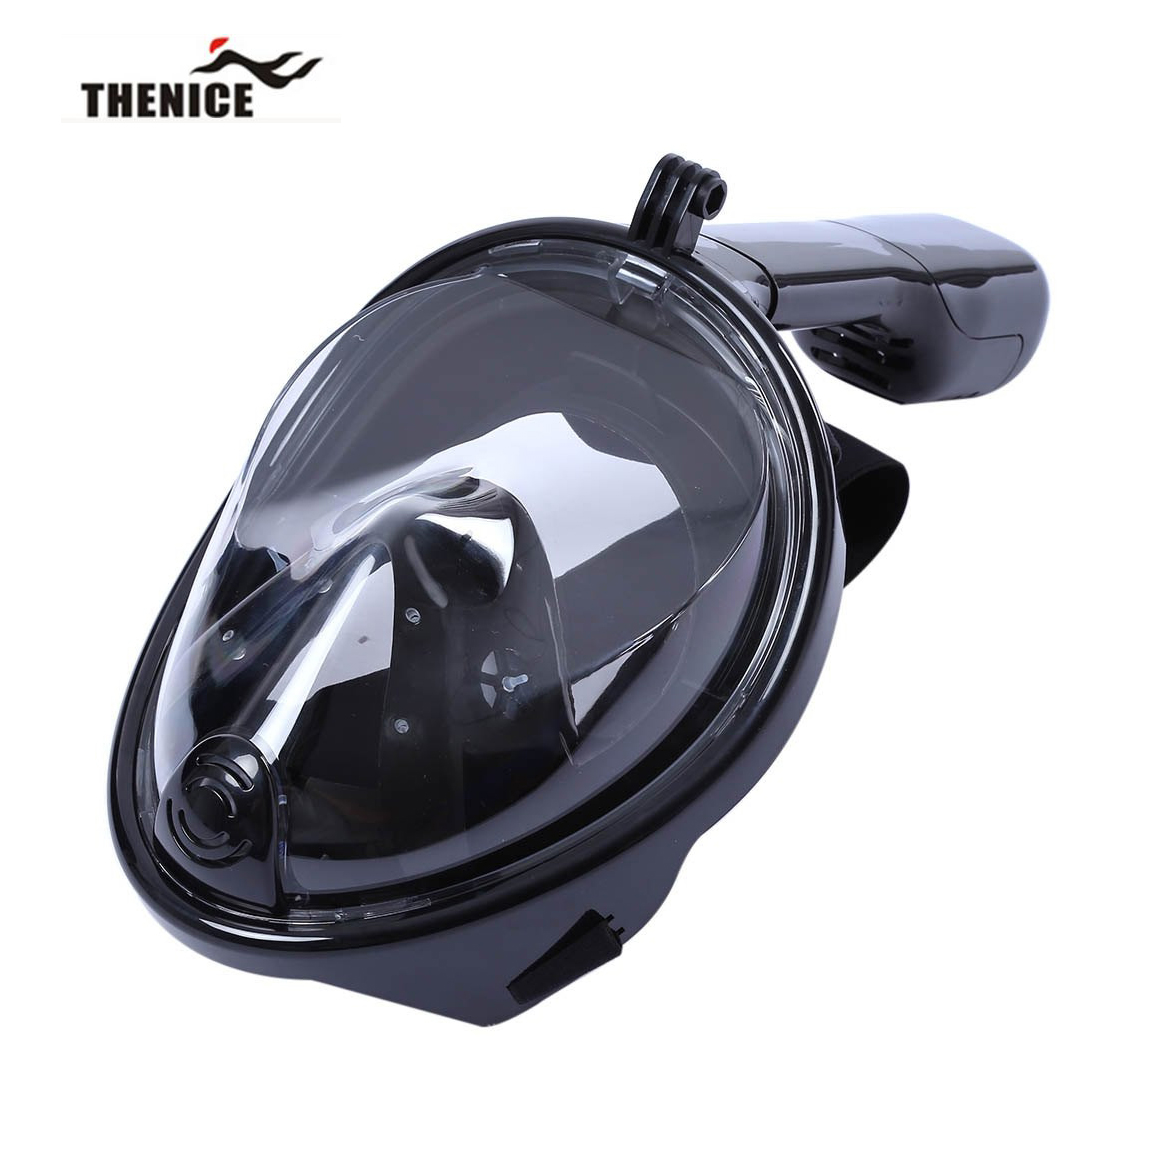 THENICE Scuba Diving Mask Snorkel Dry Snorkeling Swimming Underwater Sport Equipment Full Face Easy Breath Anti Fog Hot sale(China (Mainland))